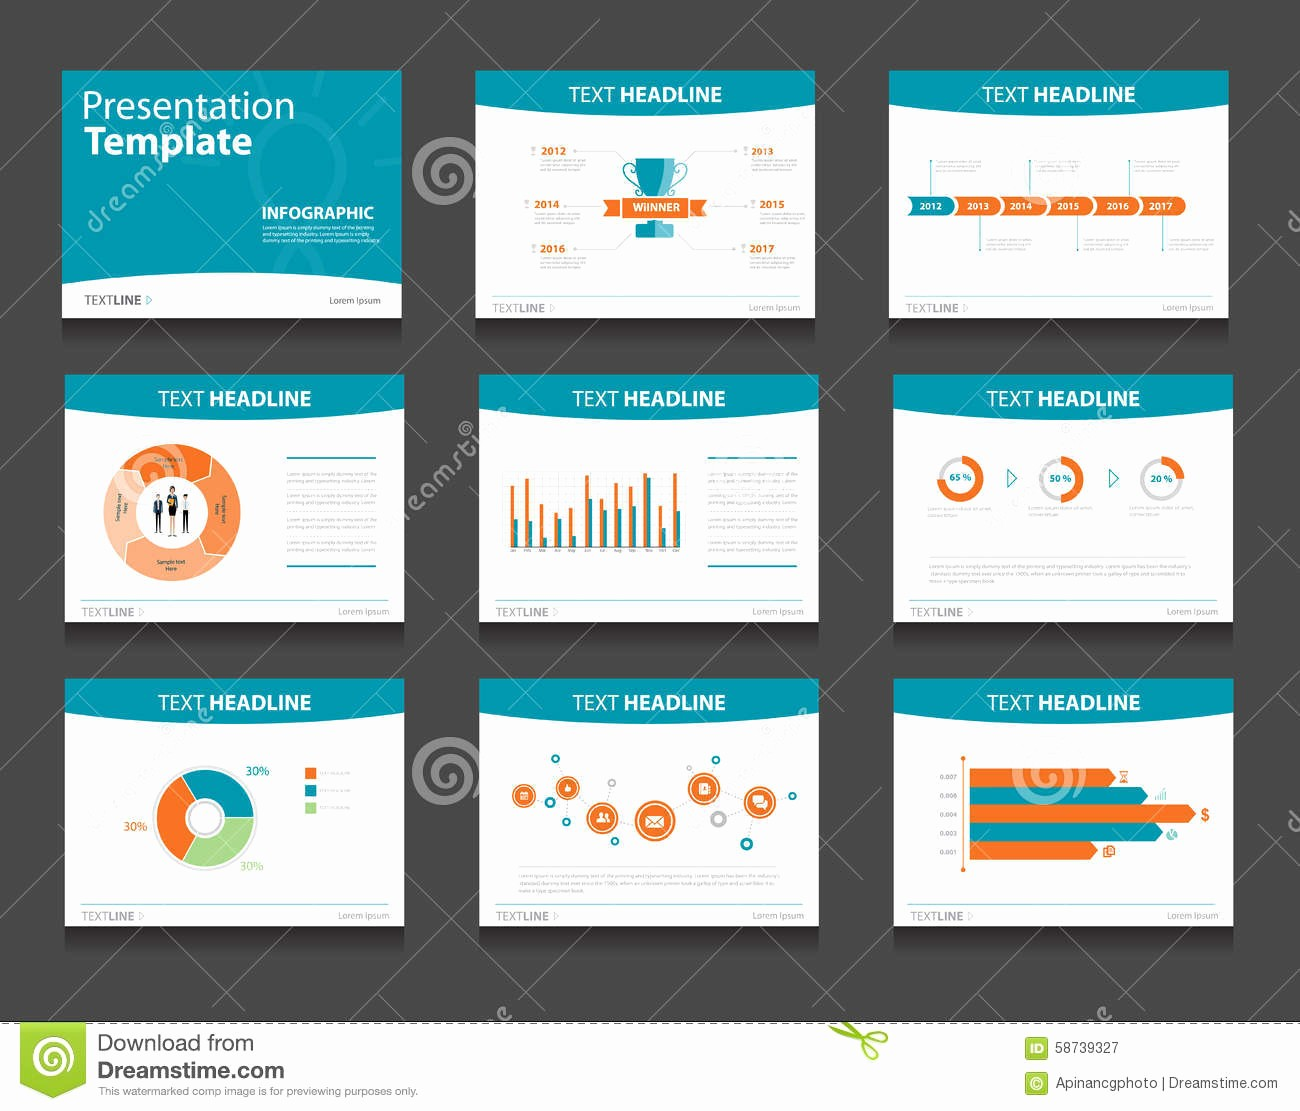 Powerpoint Slide Templates for Business Beautiful Infographic Powerpoint Template Design Backgrounds